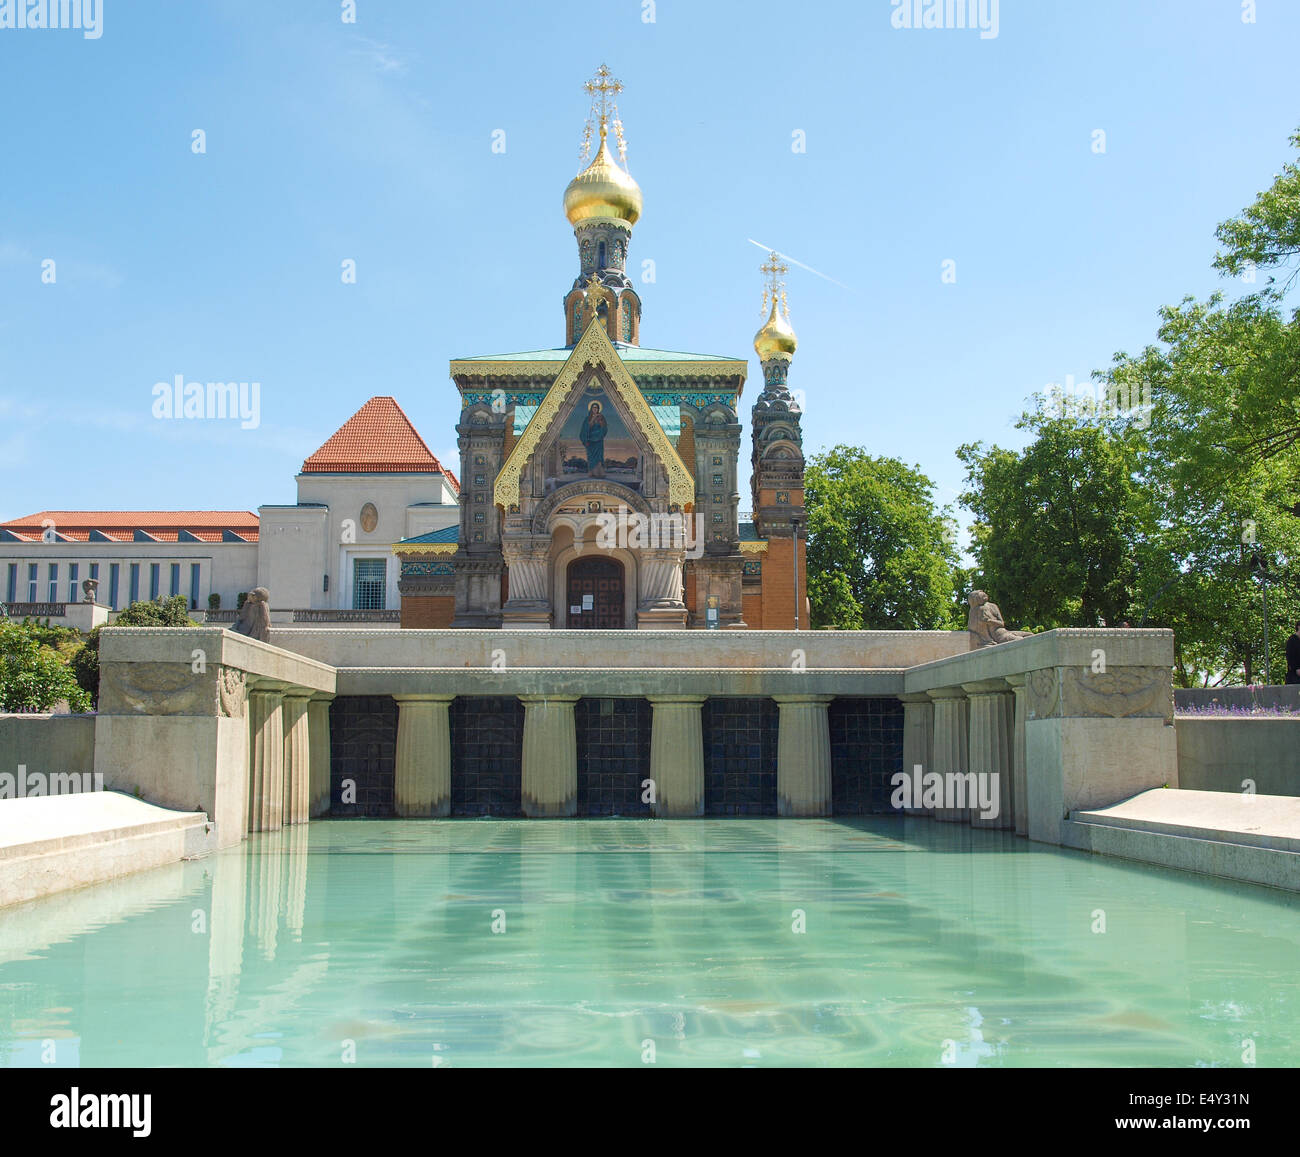 Darmstadt Swimming Pool chapel in darmstadt stock photo royalty free image